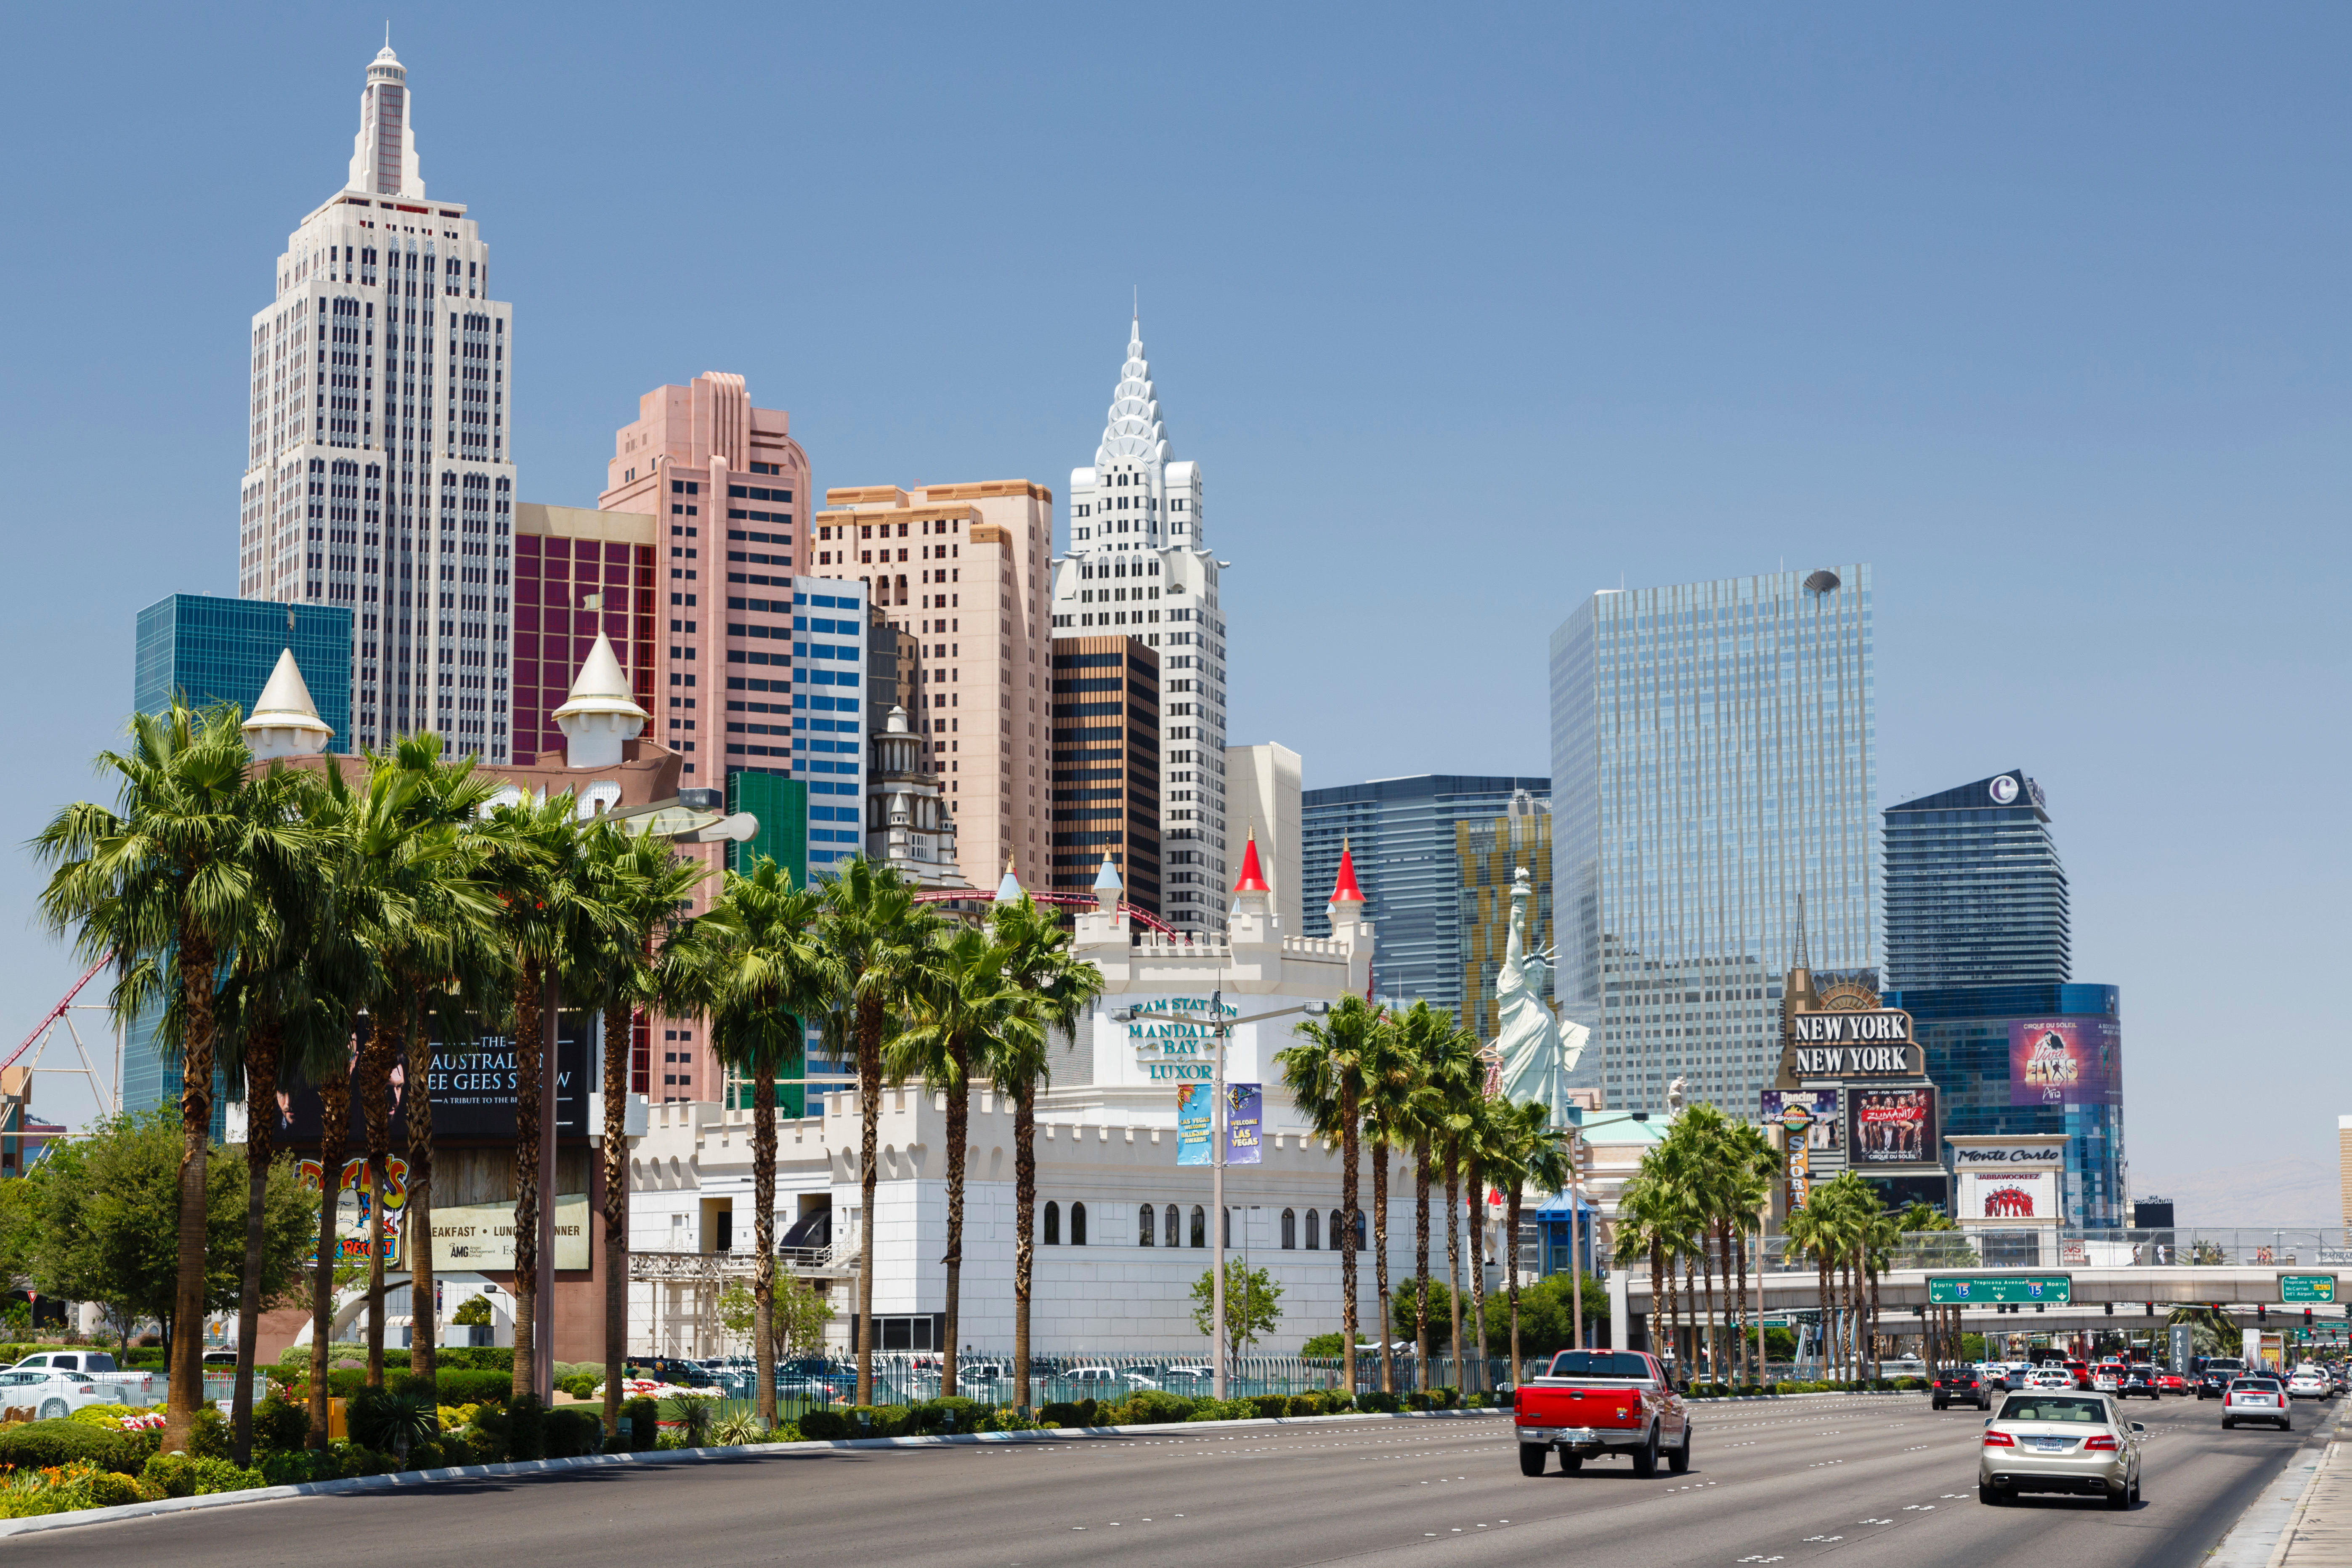 Las Vegas, USA - May 19, 2012. Excalibur Hotel and New York New York Hotel and Casino on Las Vegas Boulevard.